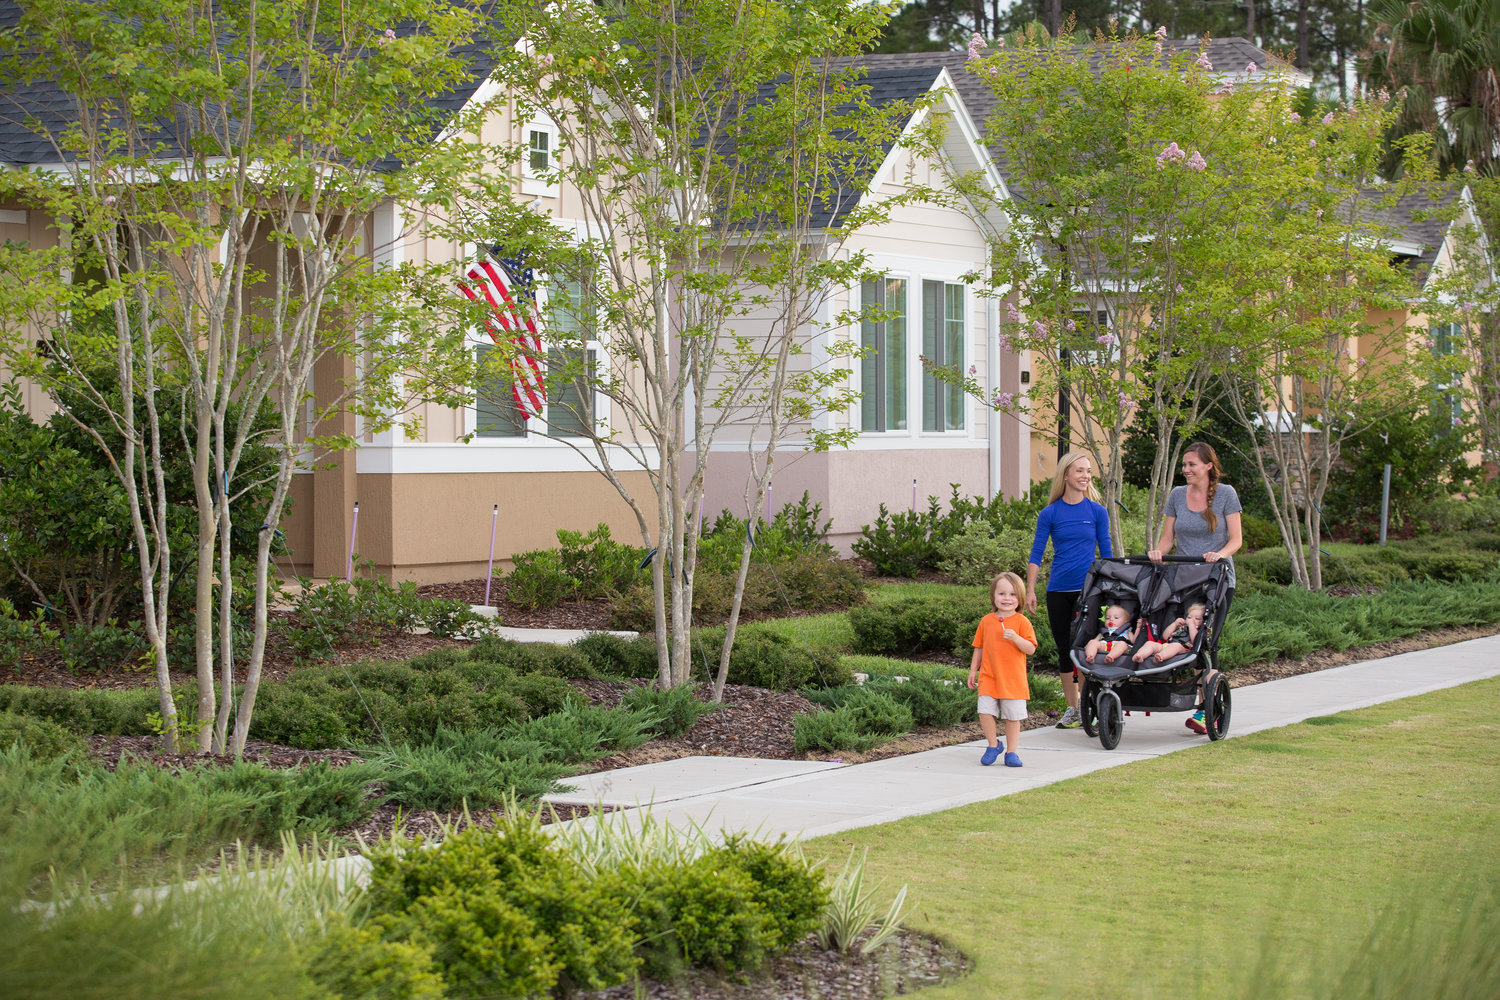 Nocatee has 41 neighborhoods comprised primarily of single-family homes.